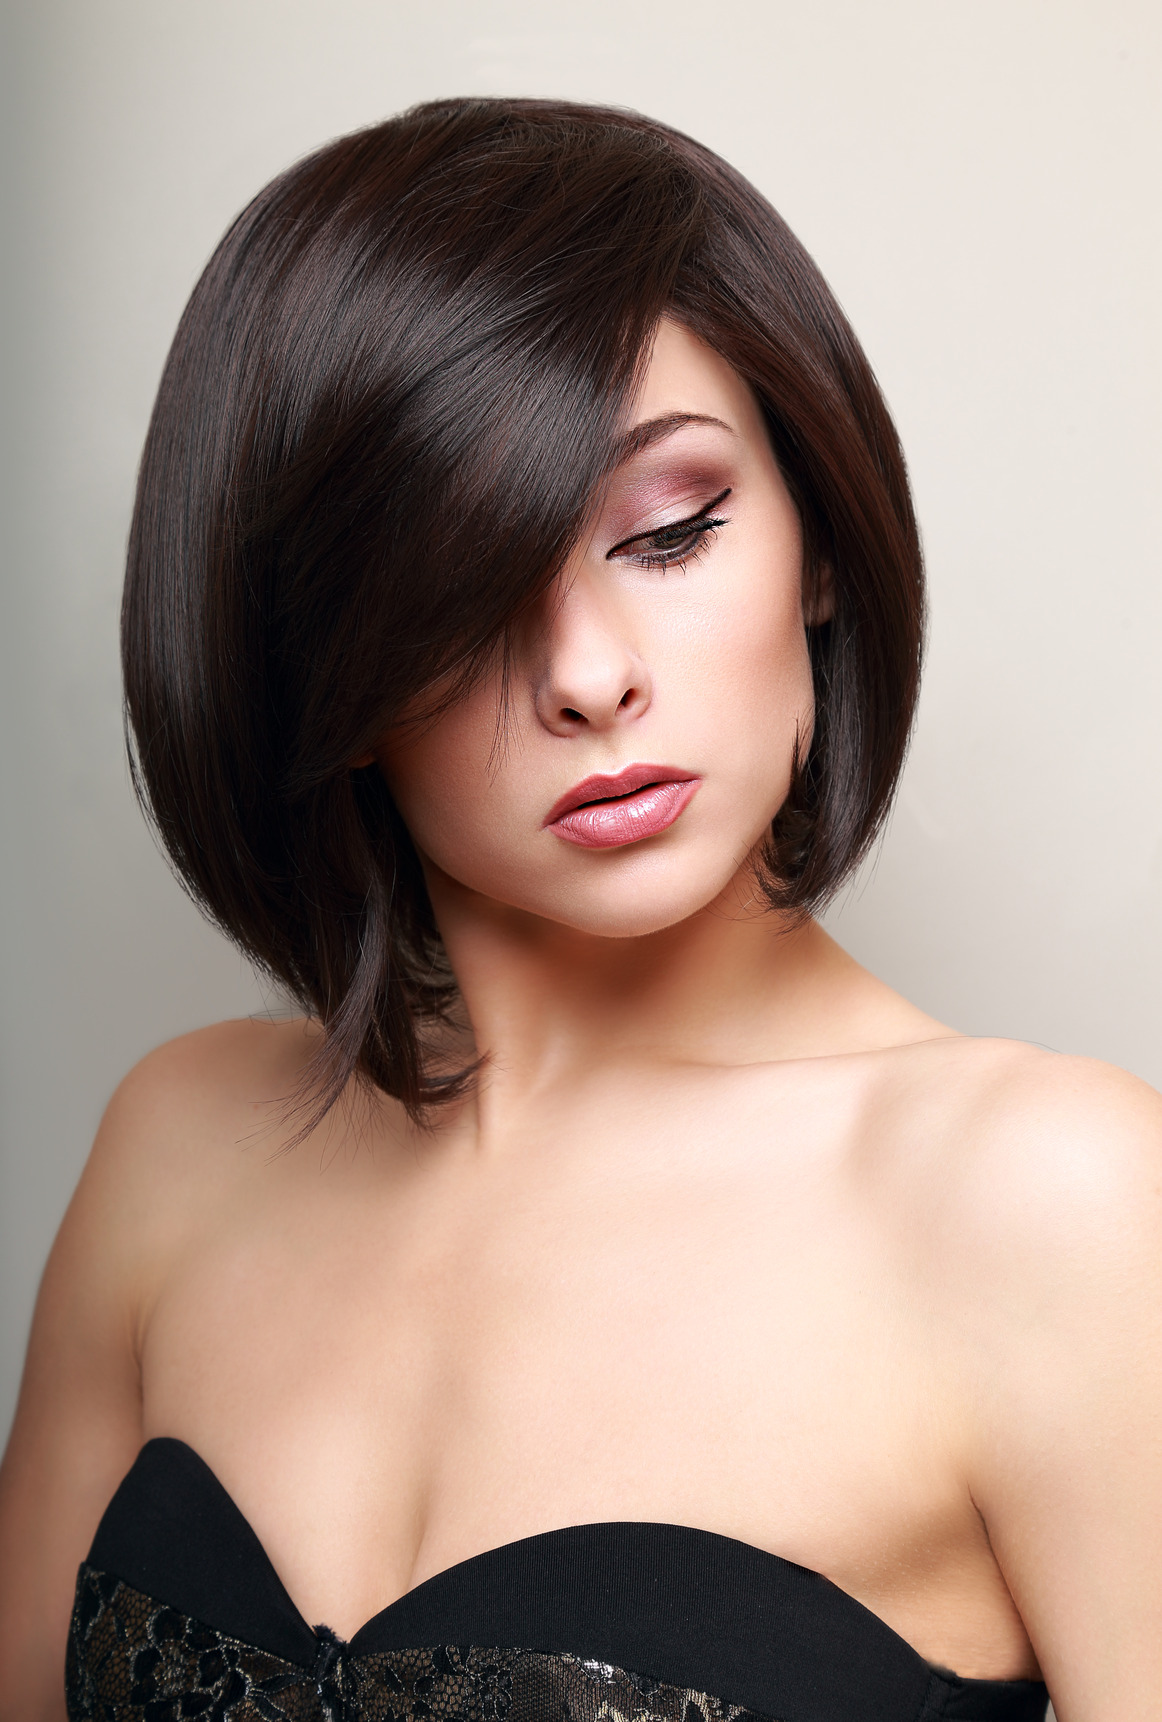 photodune-7592541-beautiful-makeup-woman-black-short-hair-style-vogue-portrait-m.jpg